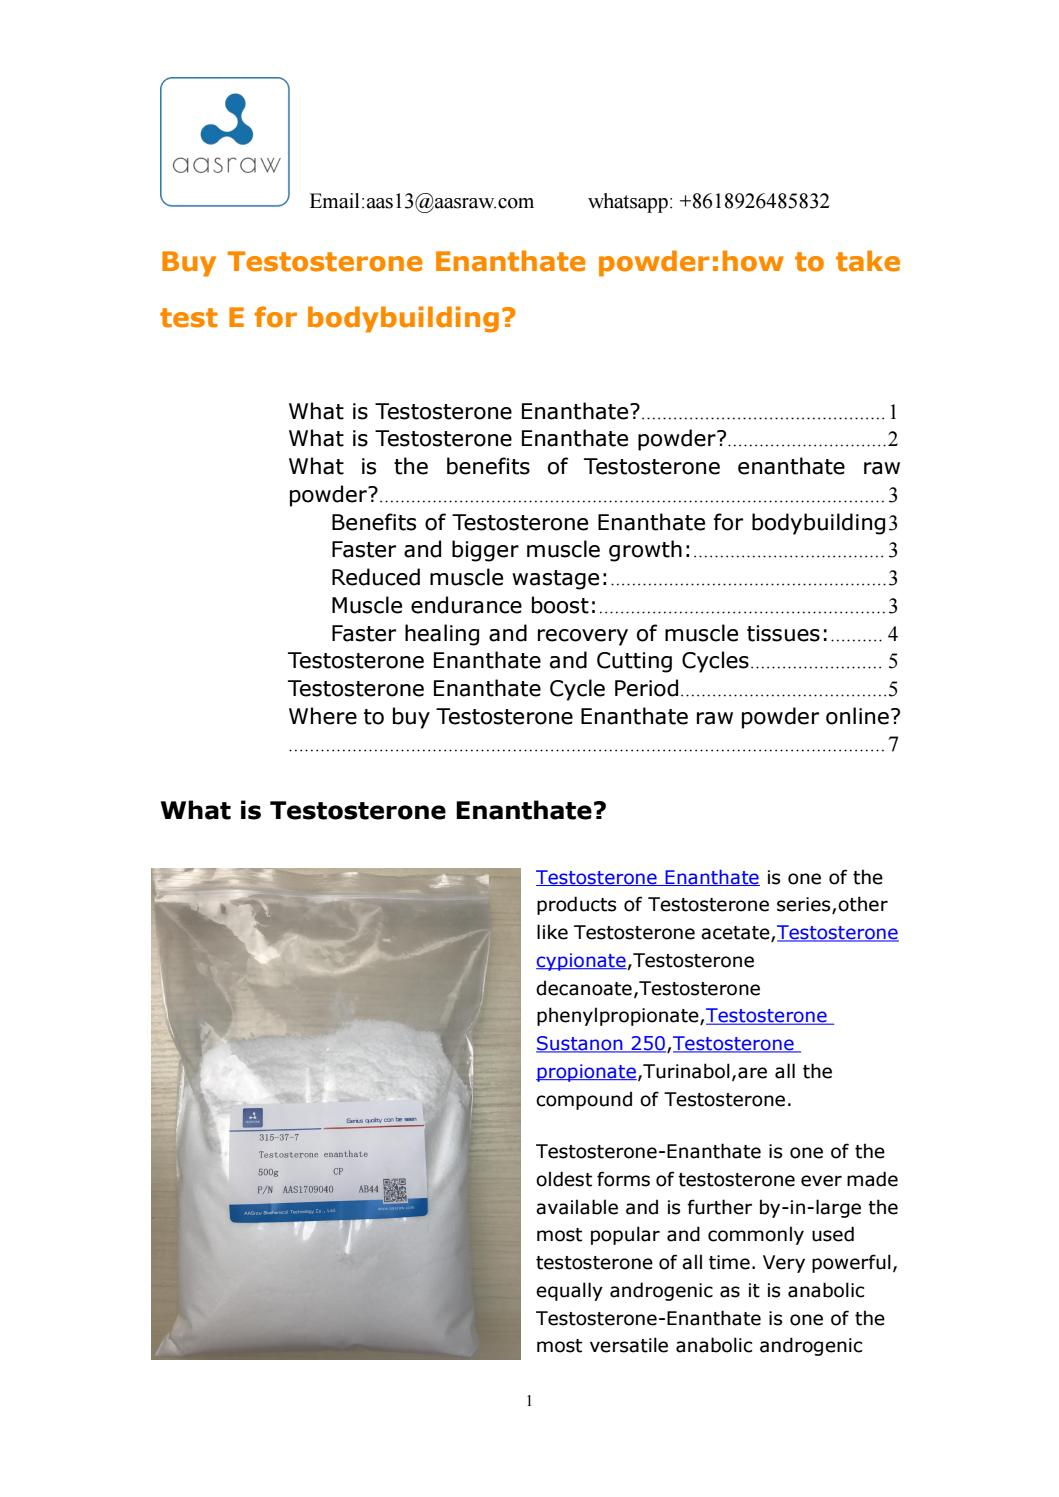 Aas buy testosterone enanthate powderhow to take test e for